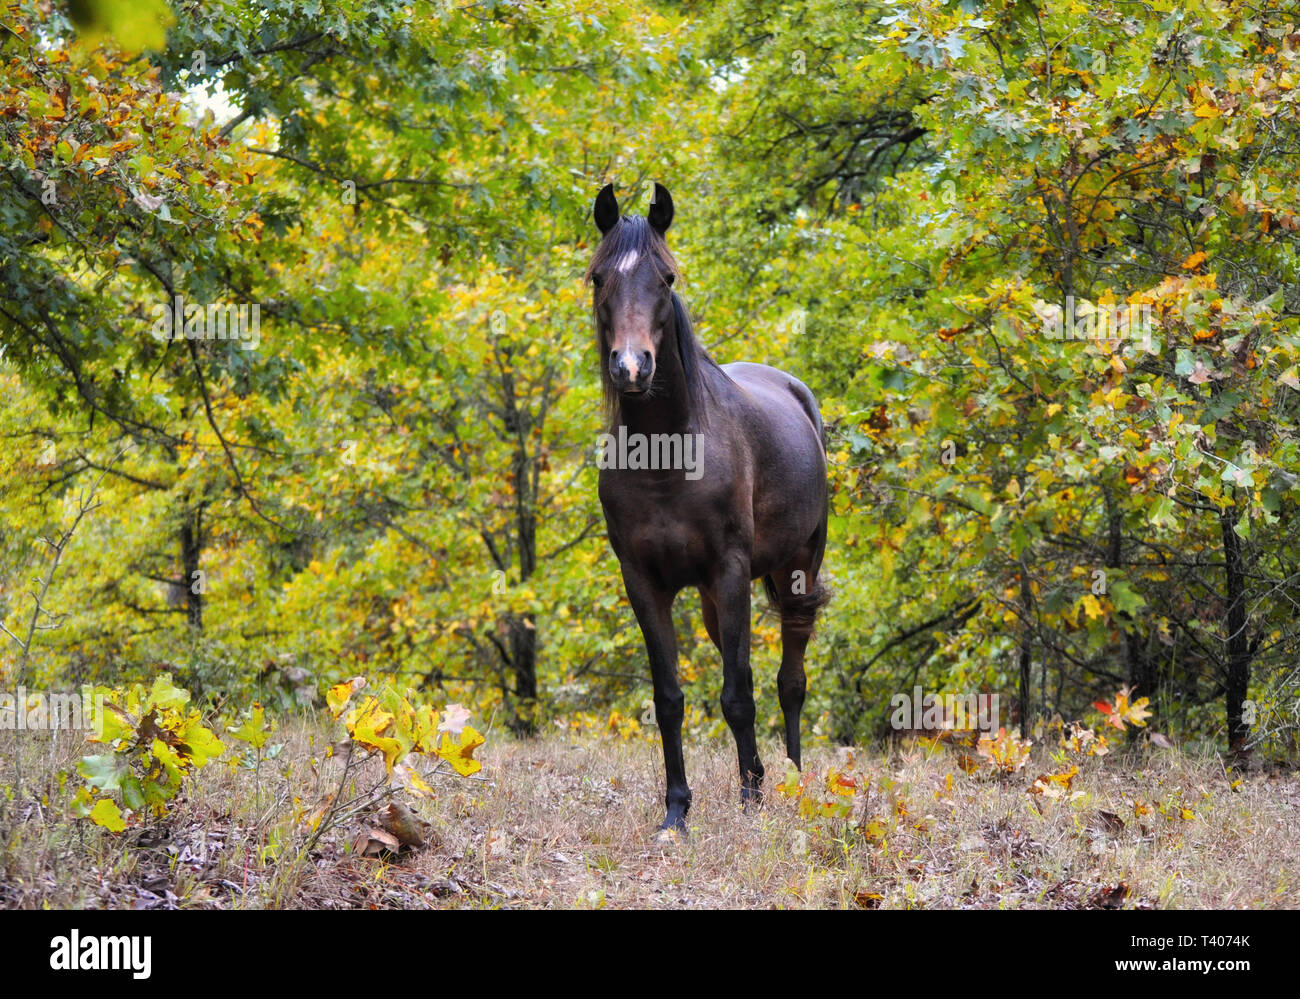 Dark bay Arabian horse looking at the viewer, standing in the middle of autumn trees - Stock Image